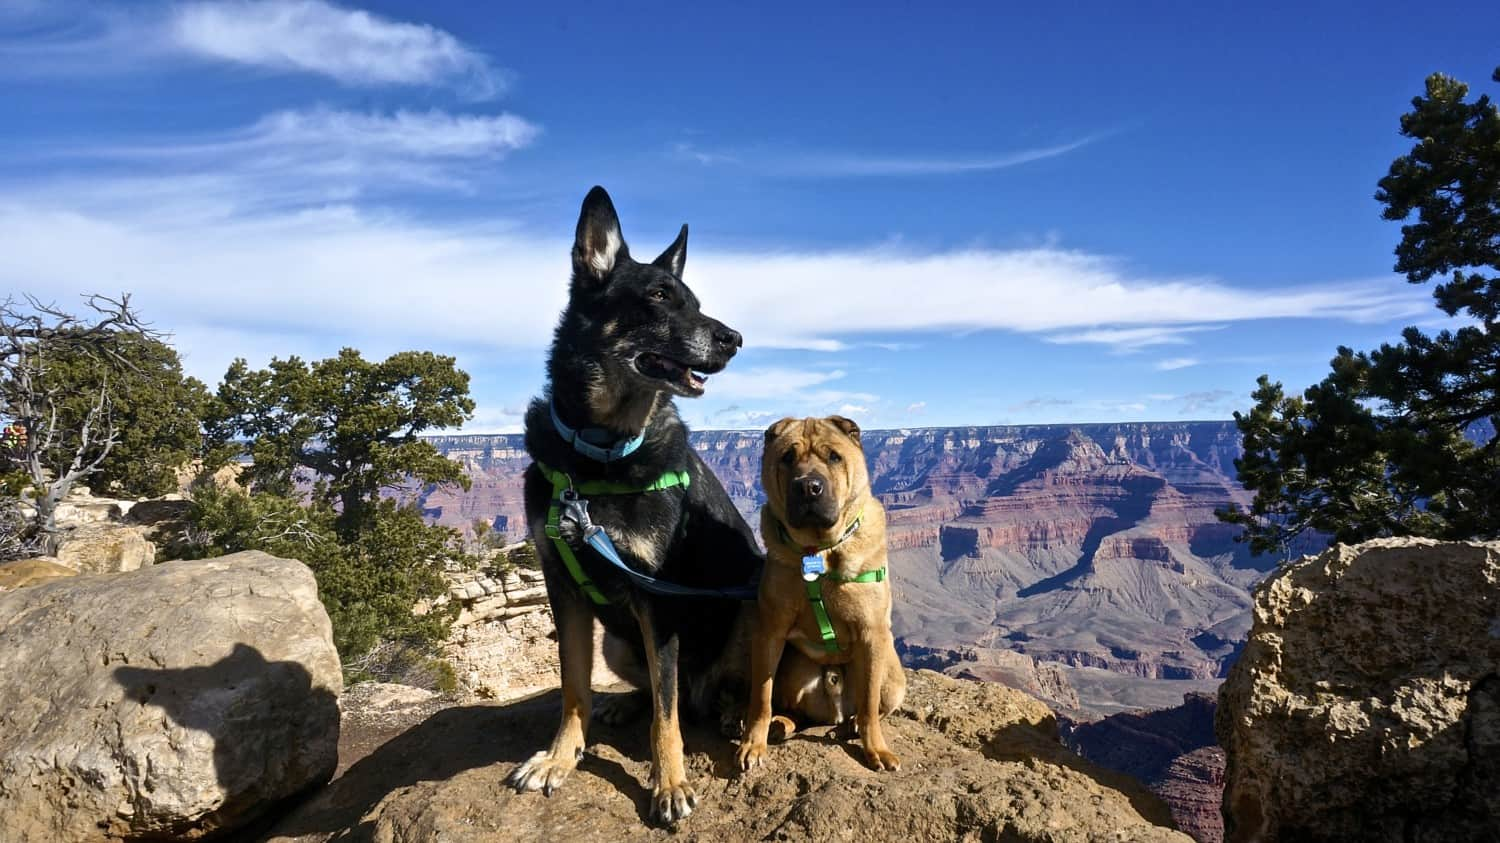 Pet Friendly National Park: The Grand Canyon